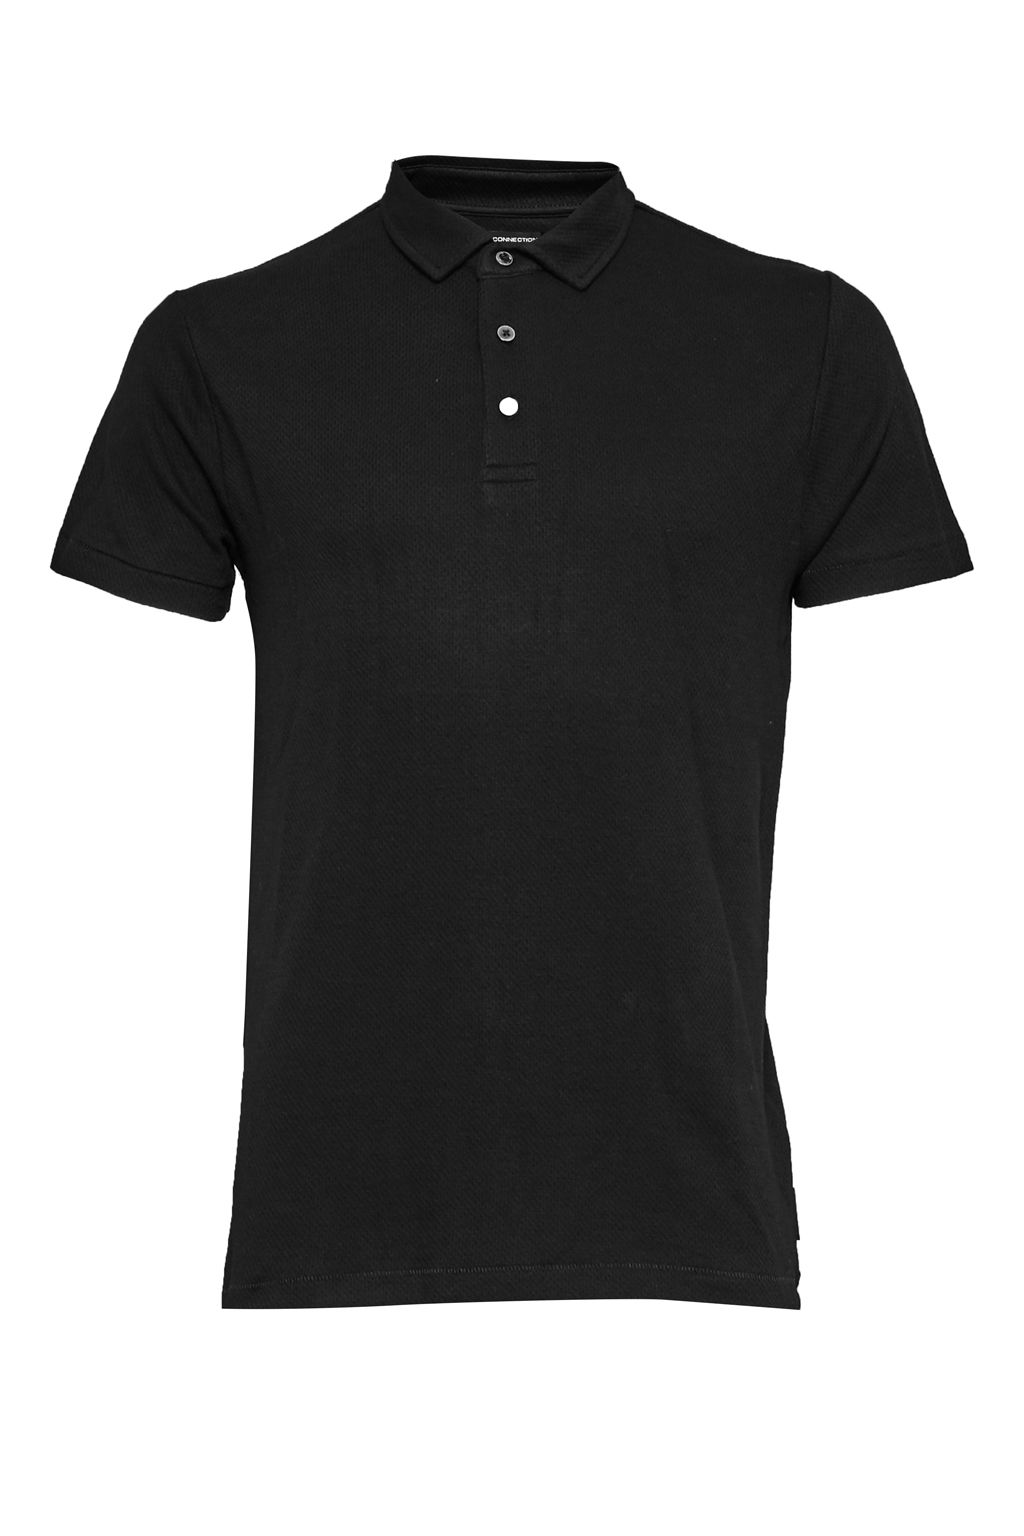 Men's French Connection Central Crepe Polo Shirt, Black